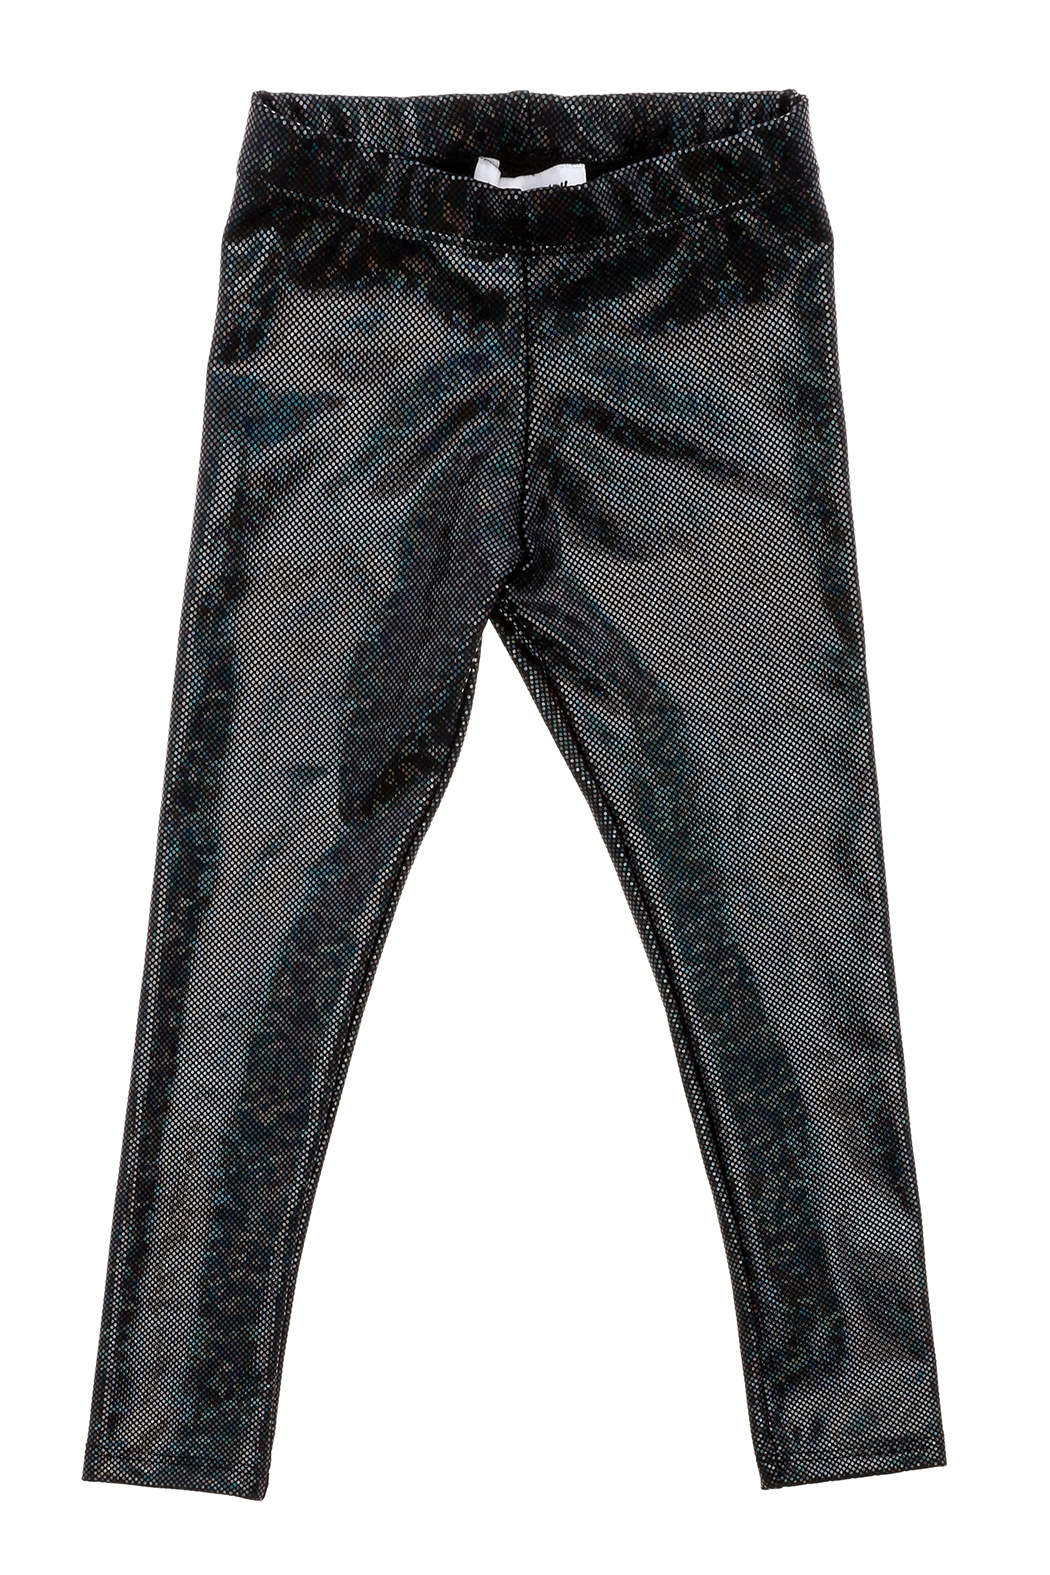 Rock Candy Ombre Metallic Leggings - Main Image